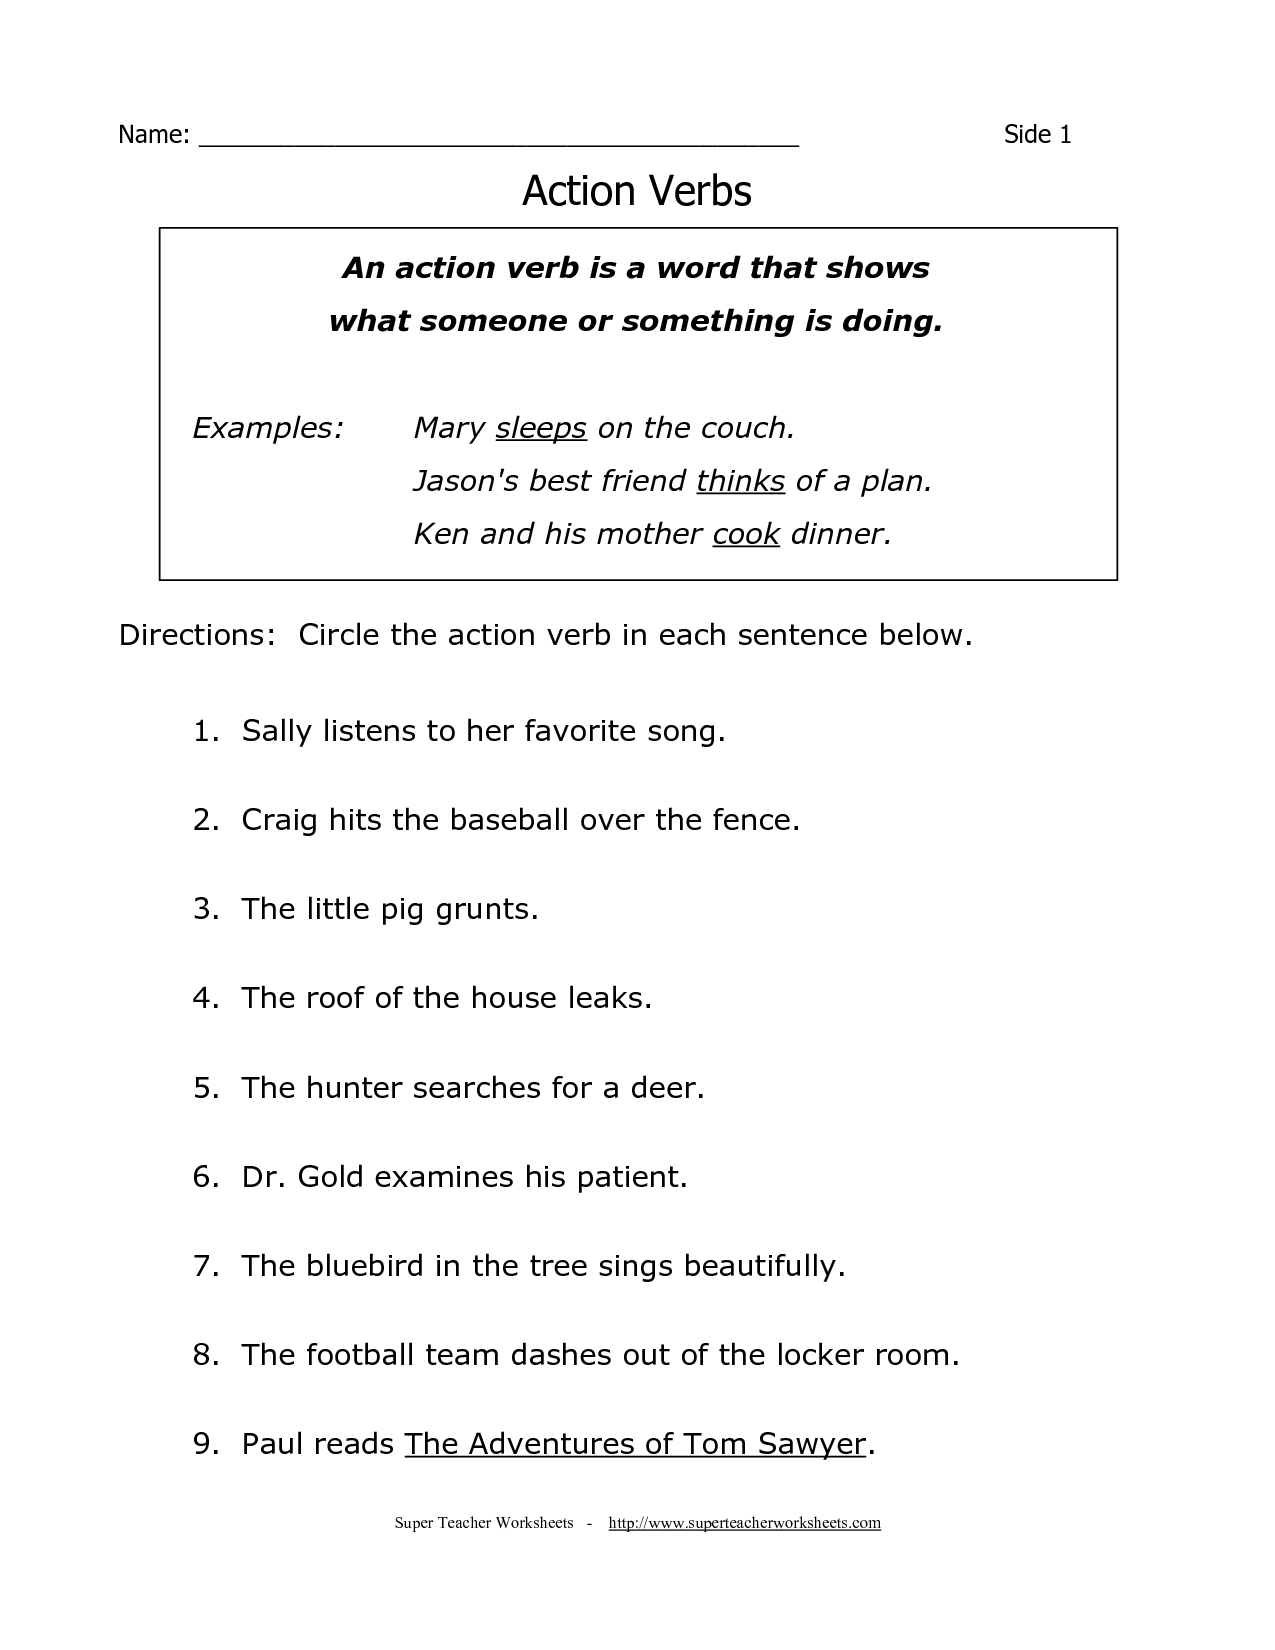 Worksheet Grammar Worksheets Elementary worksheet for 4th grade english grammar worksheets kids 9 grammar